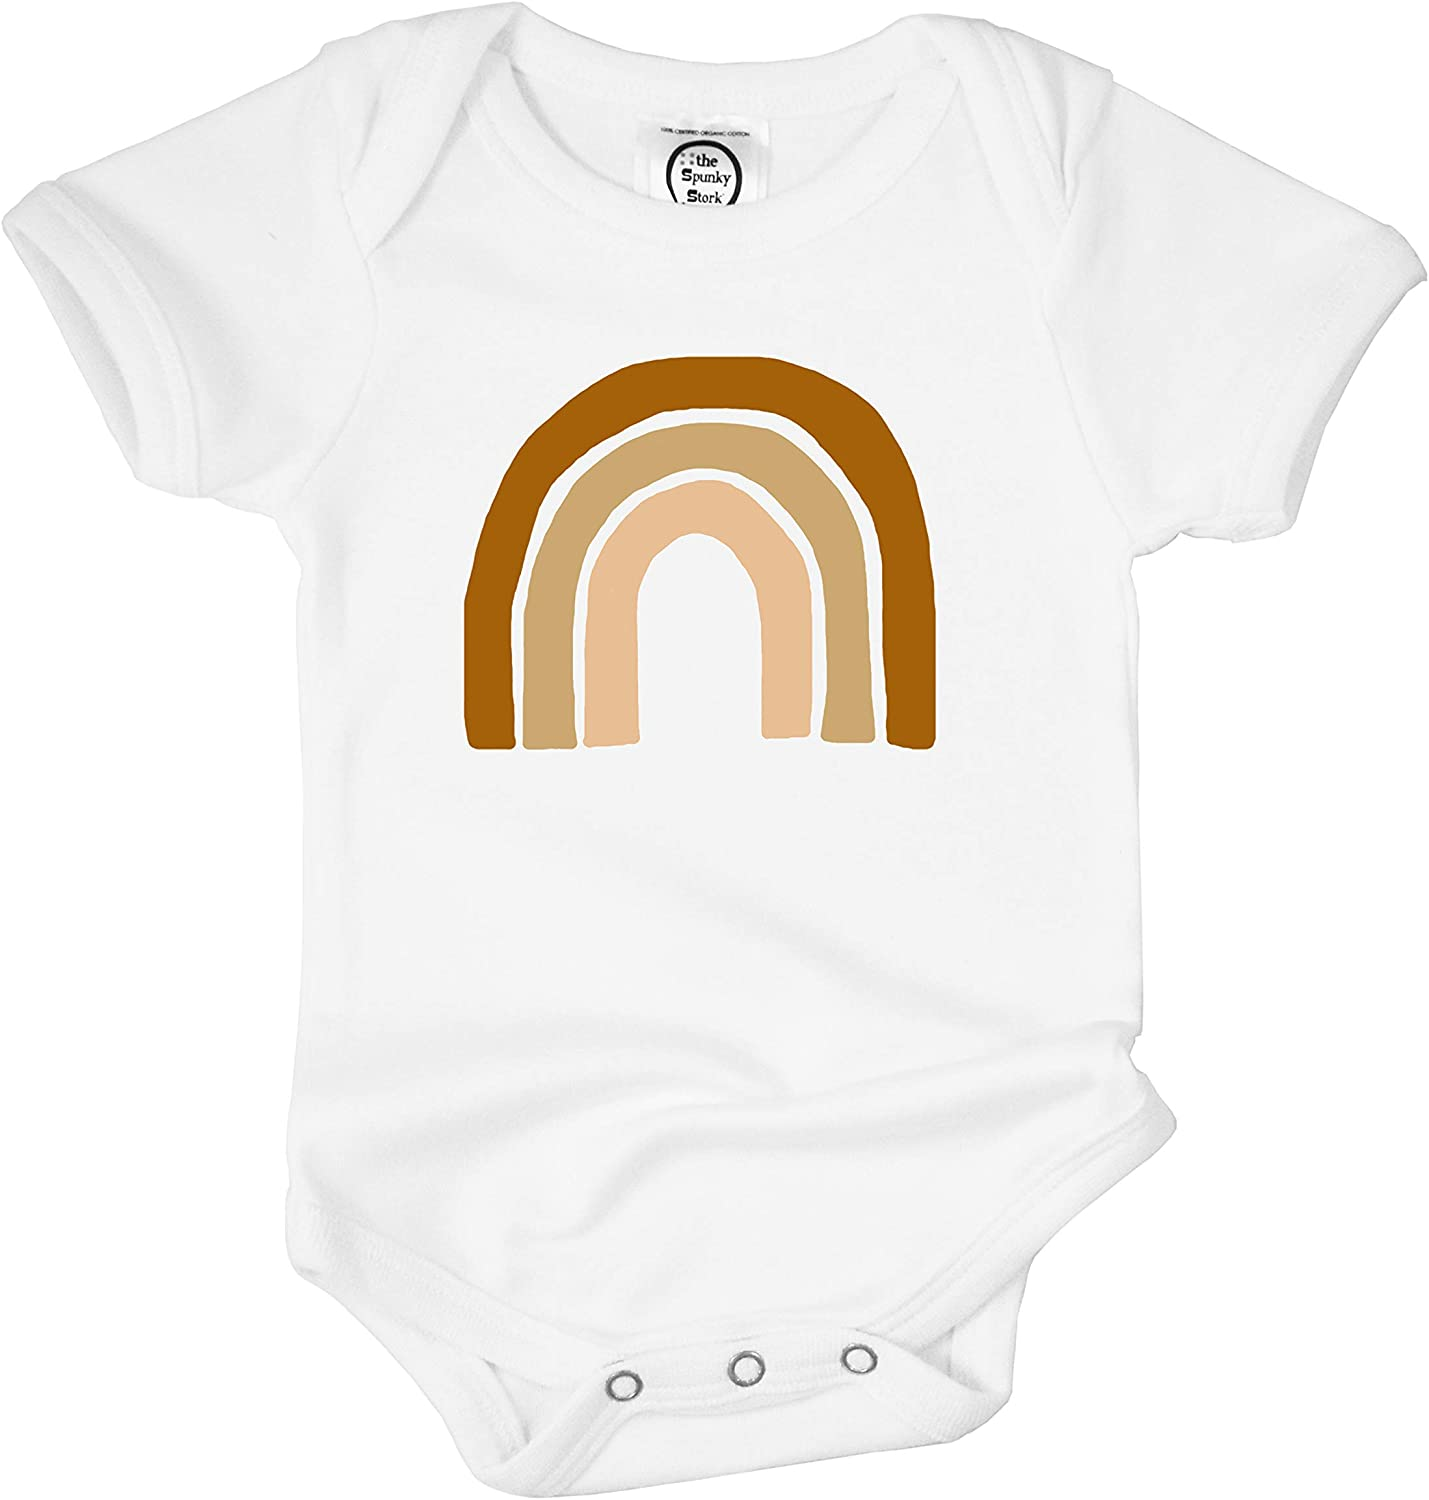 Baby Girl Clothes Baby Girl Outfit Rainbow Baby Outfit Baby Girl Gift  Newborn Girl Outfit Rainbow Baby Bodysuit Newborn Girl Clothes